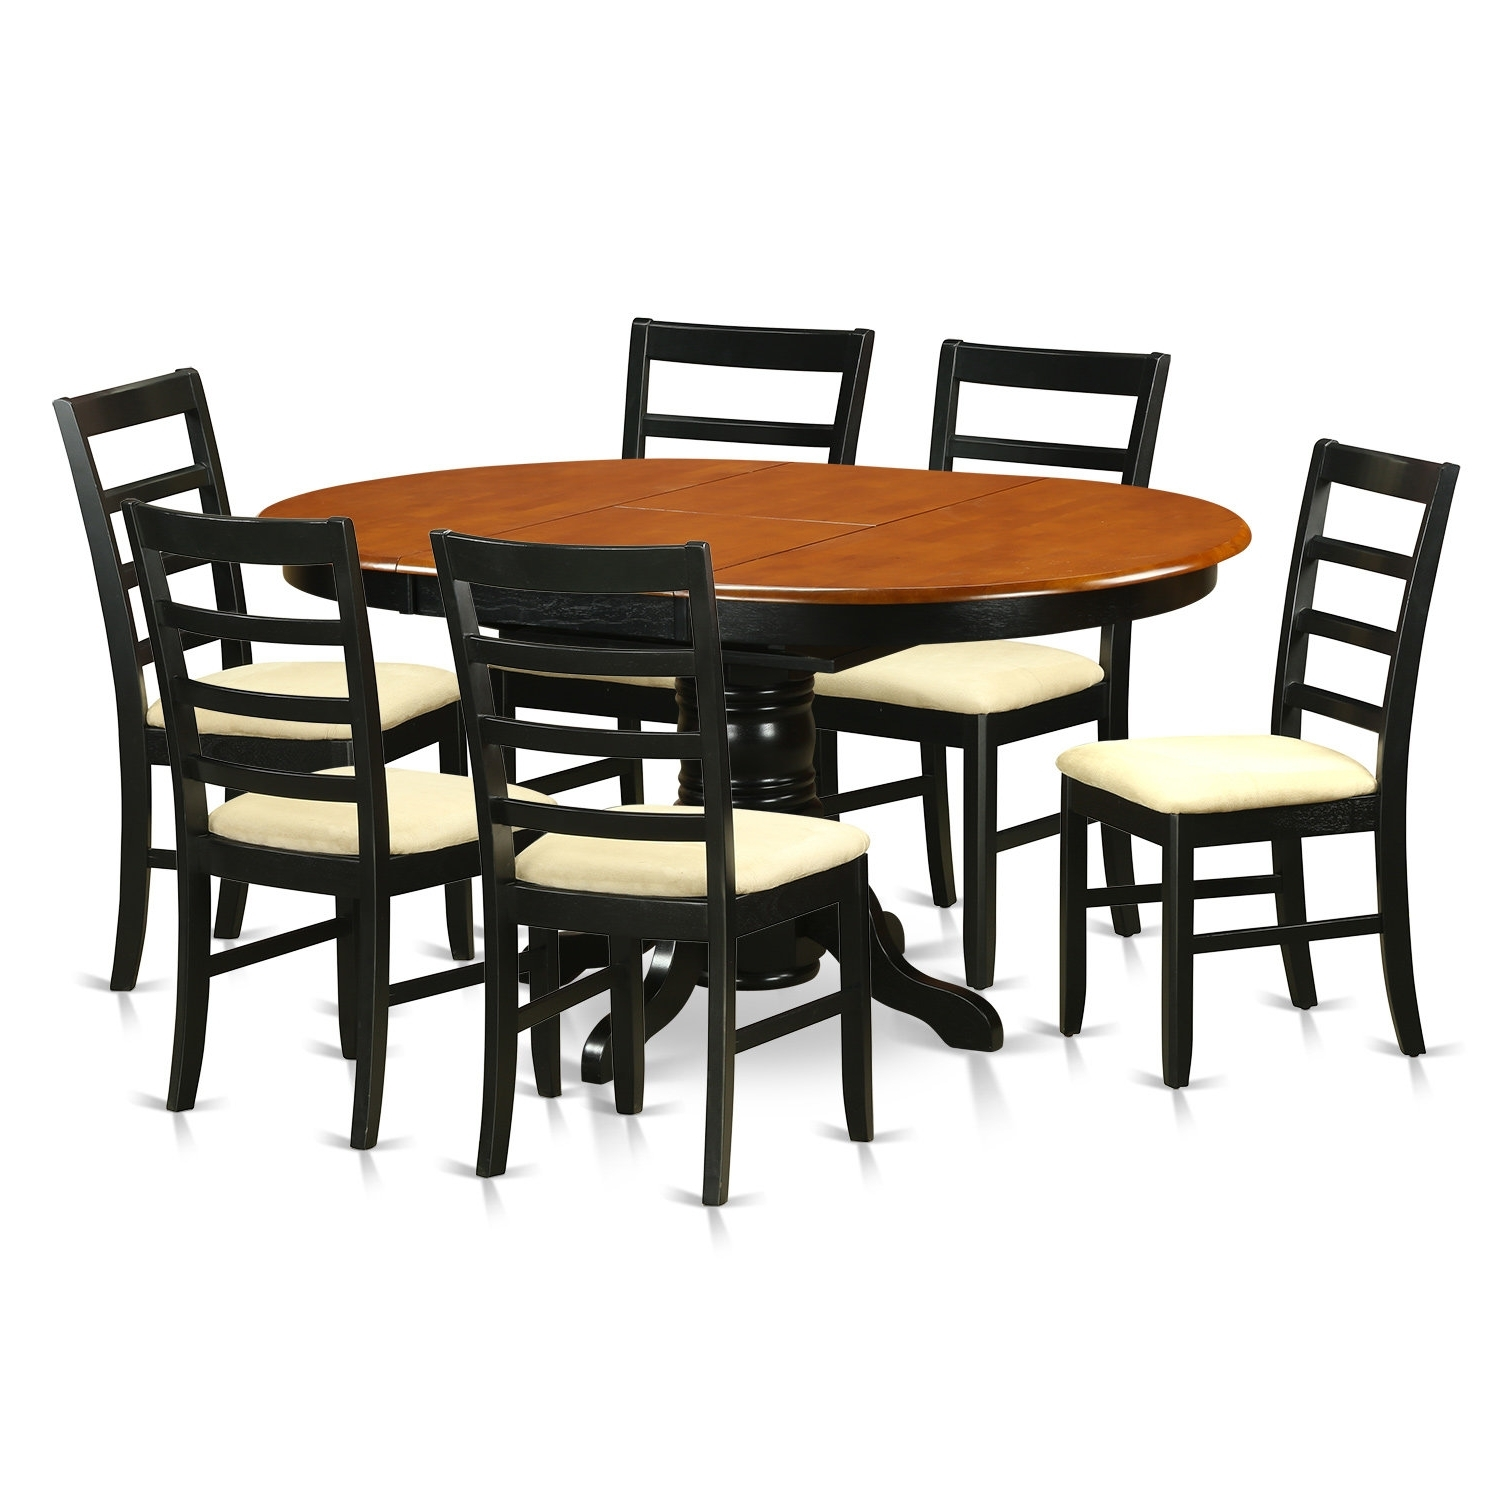 Darby Home Co Attamore 7 Piece Dining Set (Gallery 19 of 25)